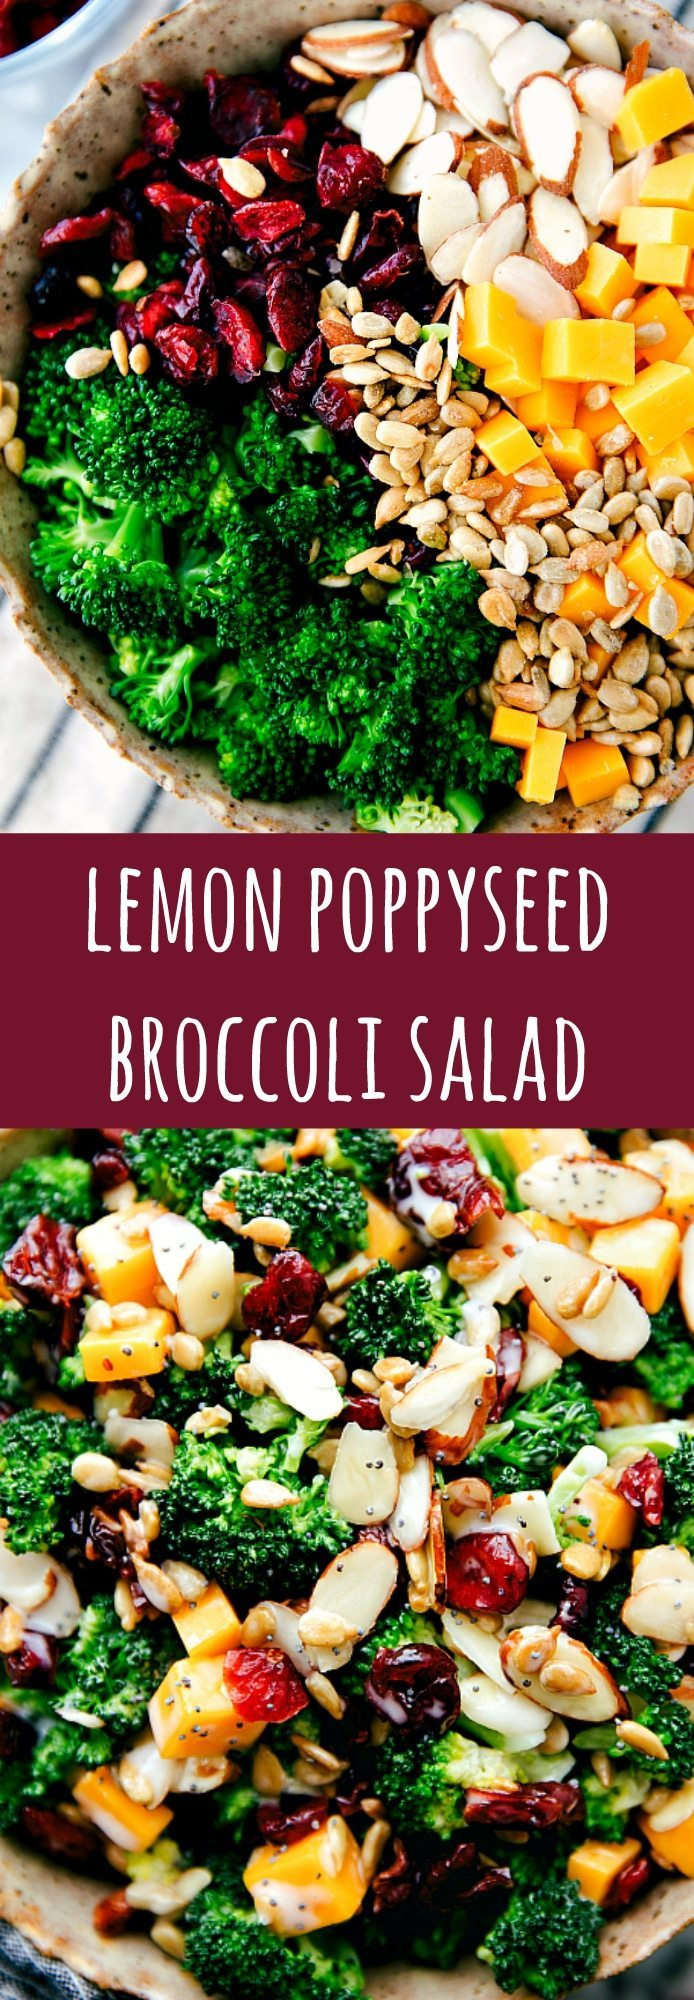 A delicious, simple, and quick lemon poppyseed broccoli salad. Broccoli, dried cranberries, sunflower seeds, sharp cheddar cheese, and sliced almonds with a delicious creamy lemon poppyseed dressing.